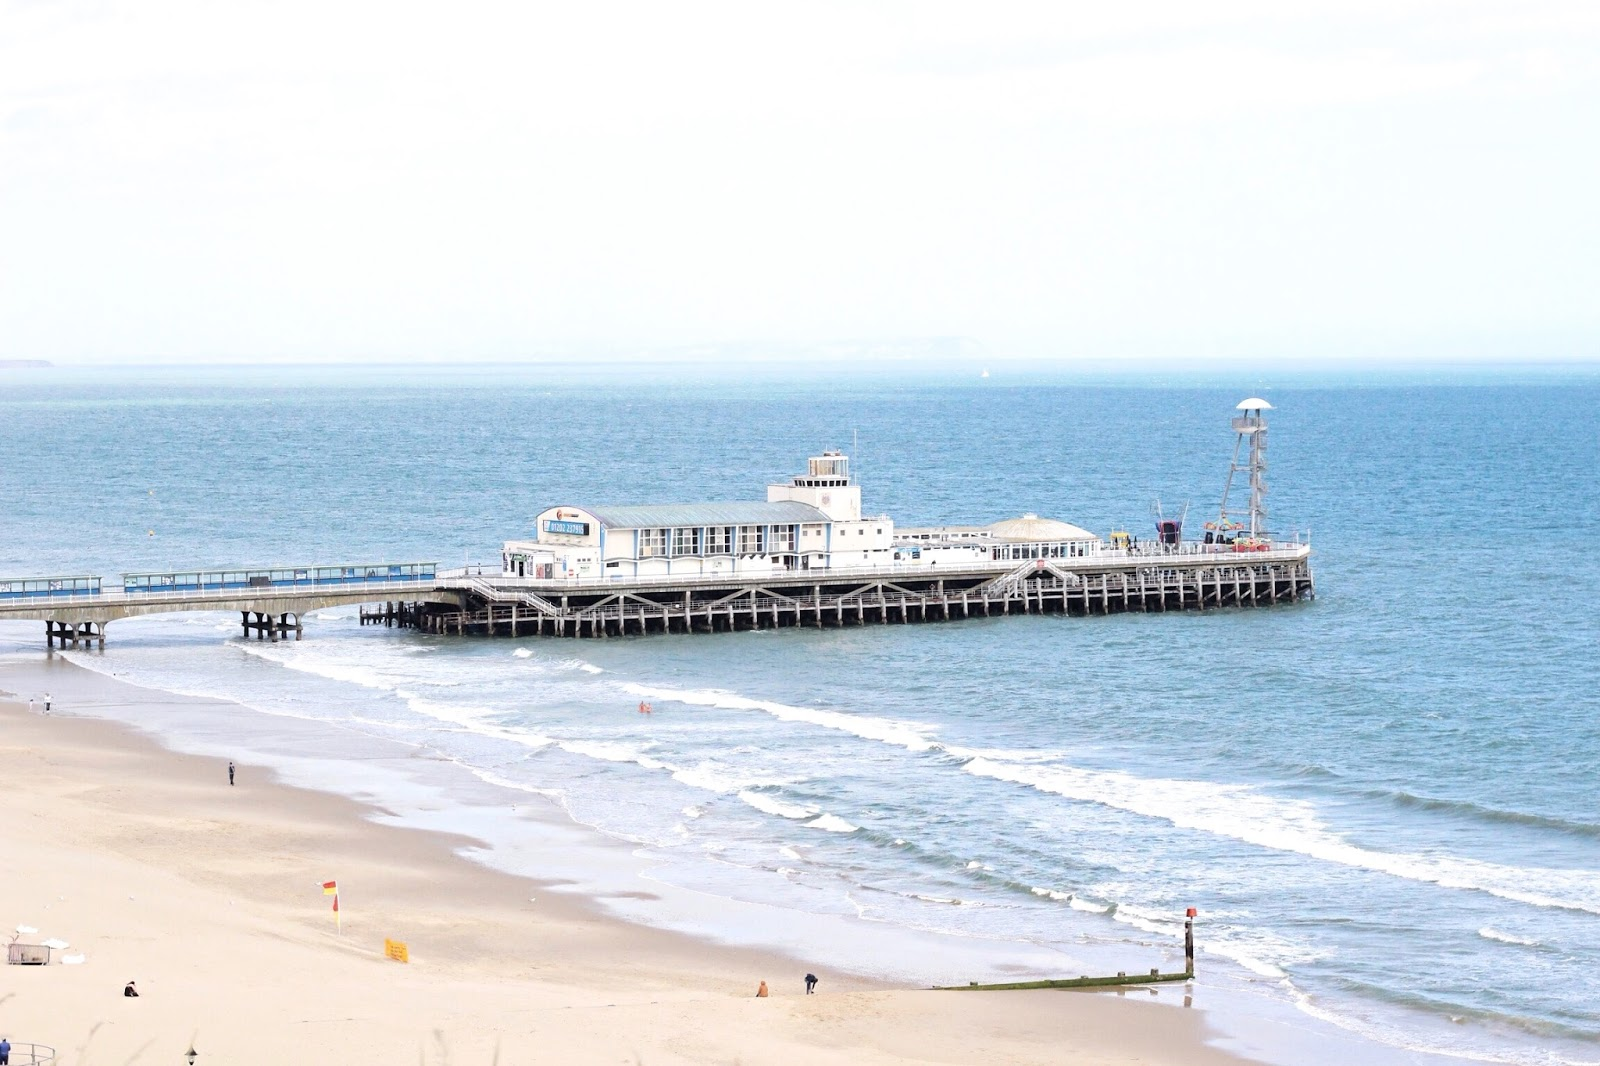 Bournemouth Pier from a distance